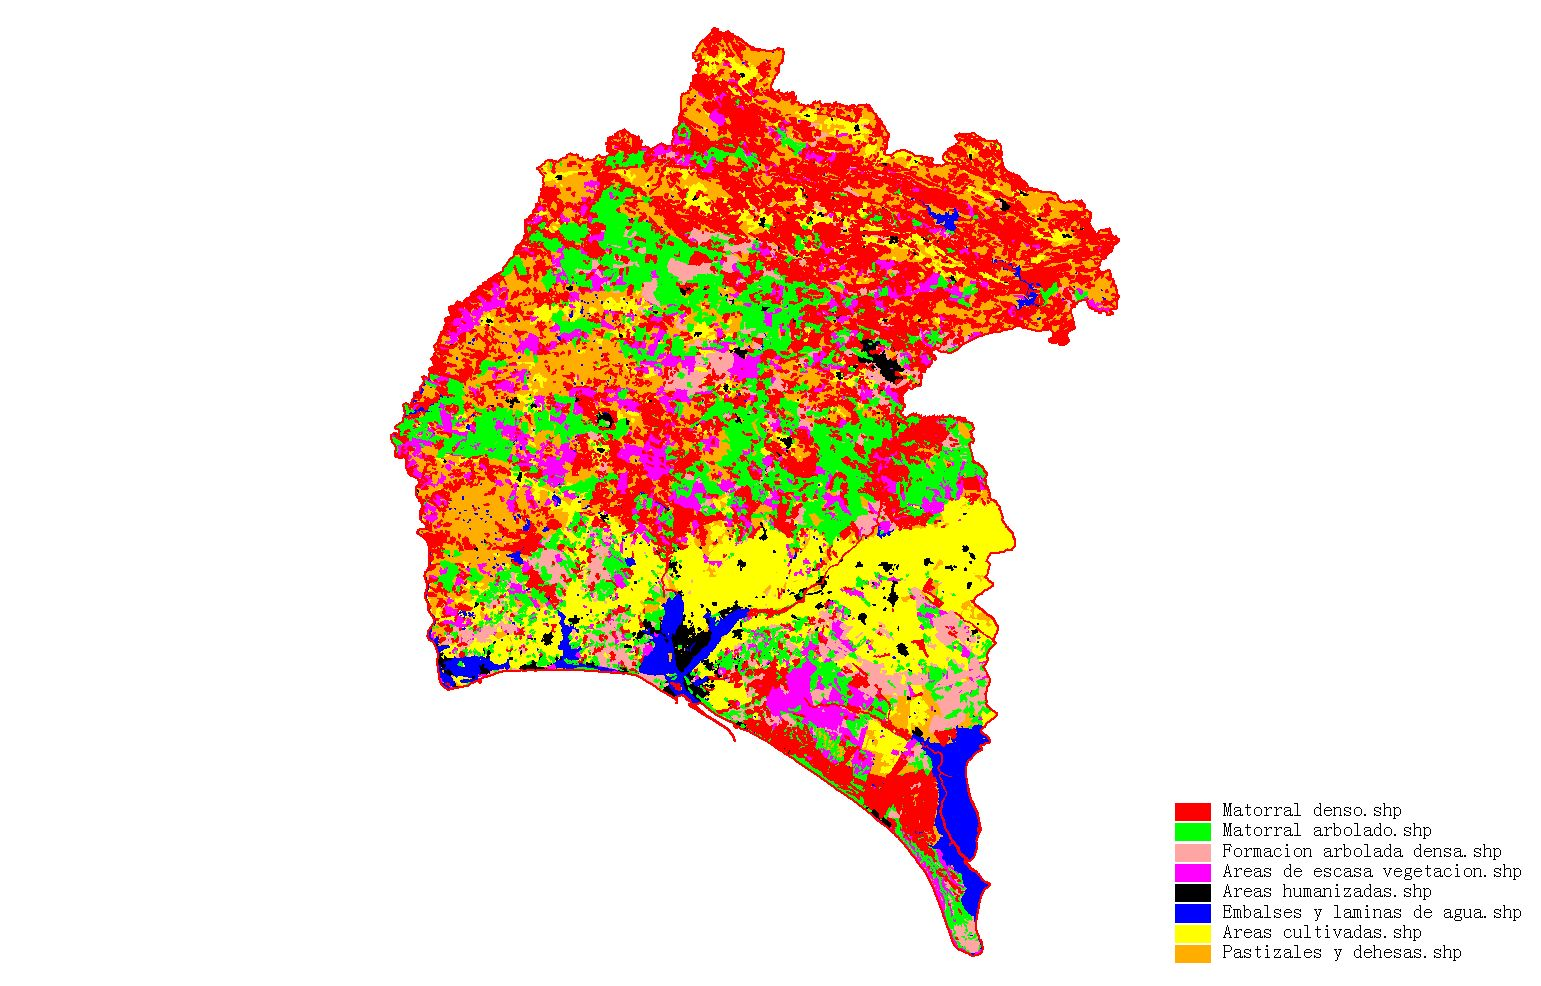 Coverage map of Huelva